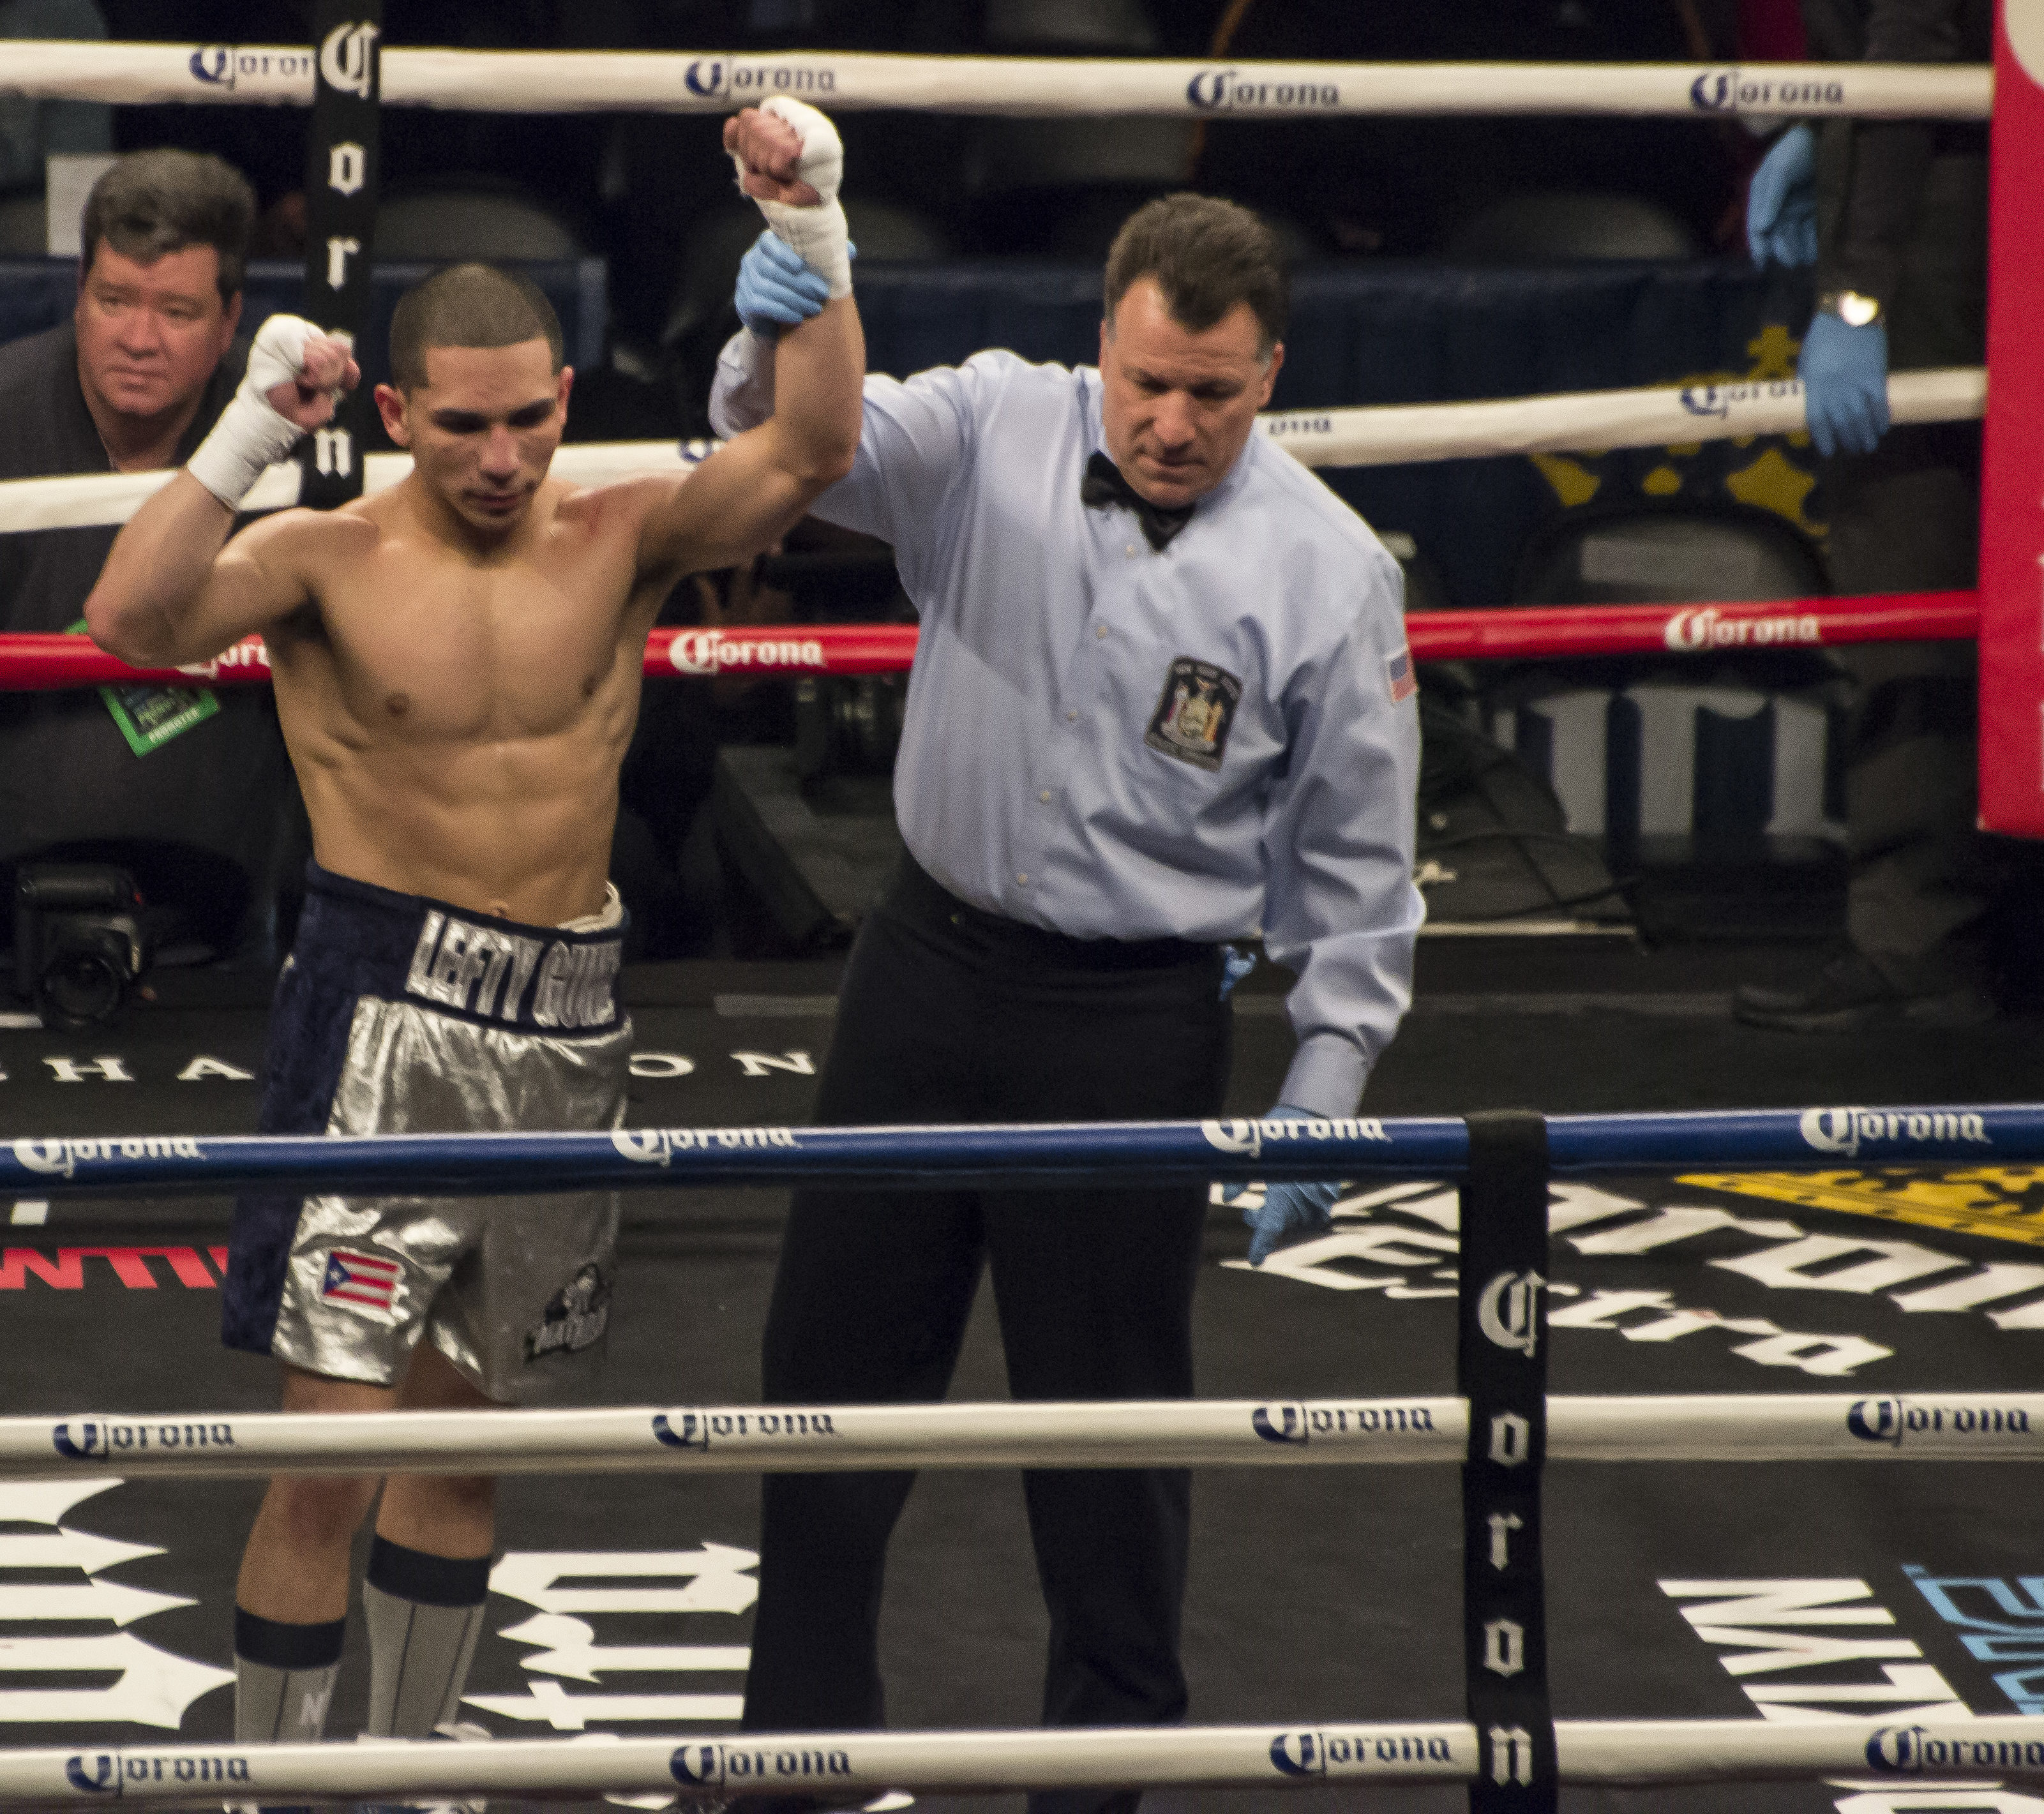 Ridgewood boxer Mathew Gonzalez wins by unanimous decision in first pro fight in New York City